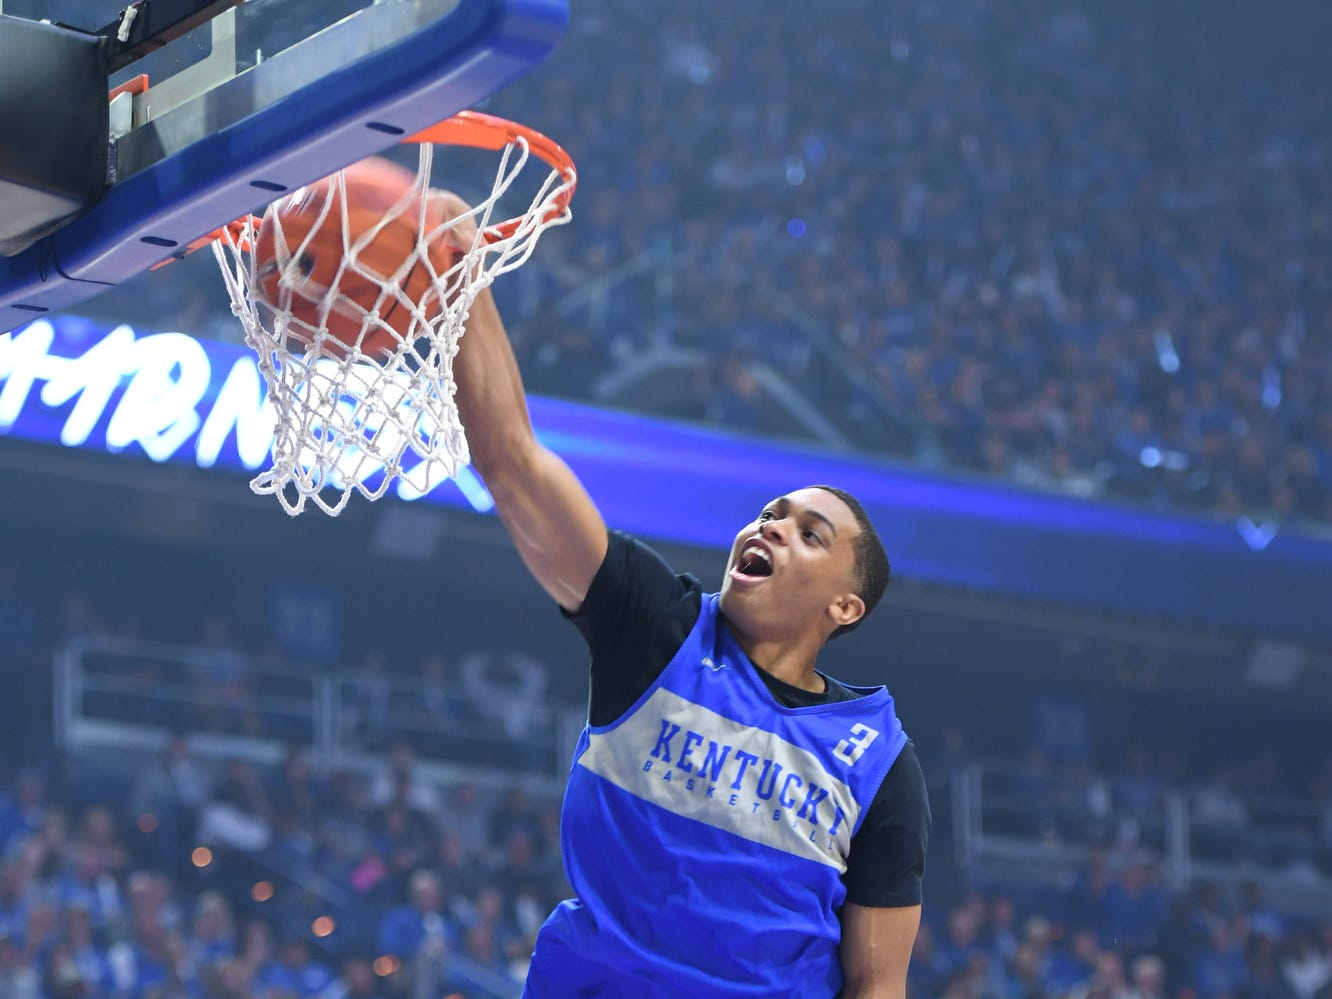 Freshman Keldon Johnson dunks over two people during the University of Kentucky basketball's annual Big Blue Madness at Rupp Arena in Lexington, Kentucky on Friday, Oct. 12, 2018.